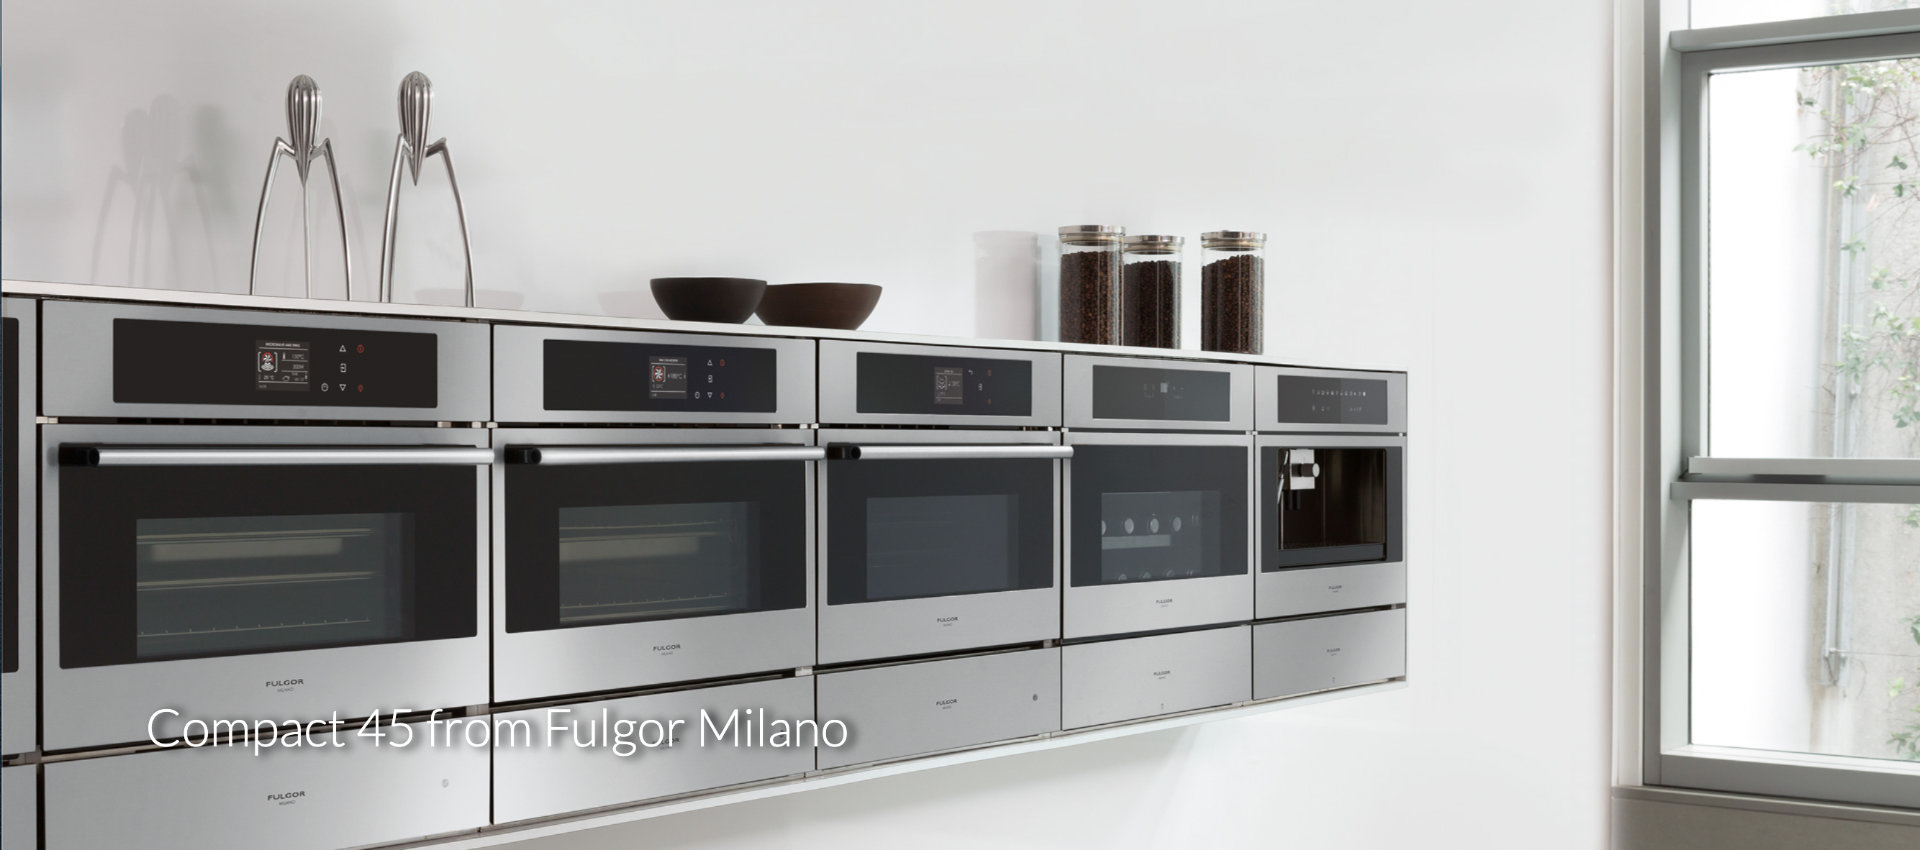 Compact 45 from Fulgor Milano